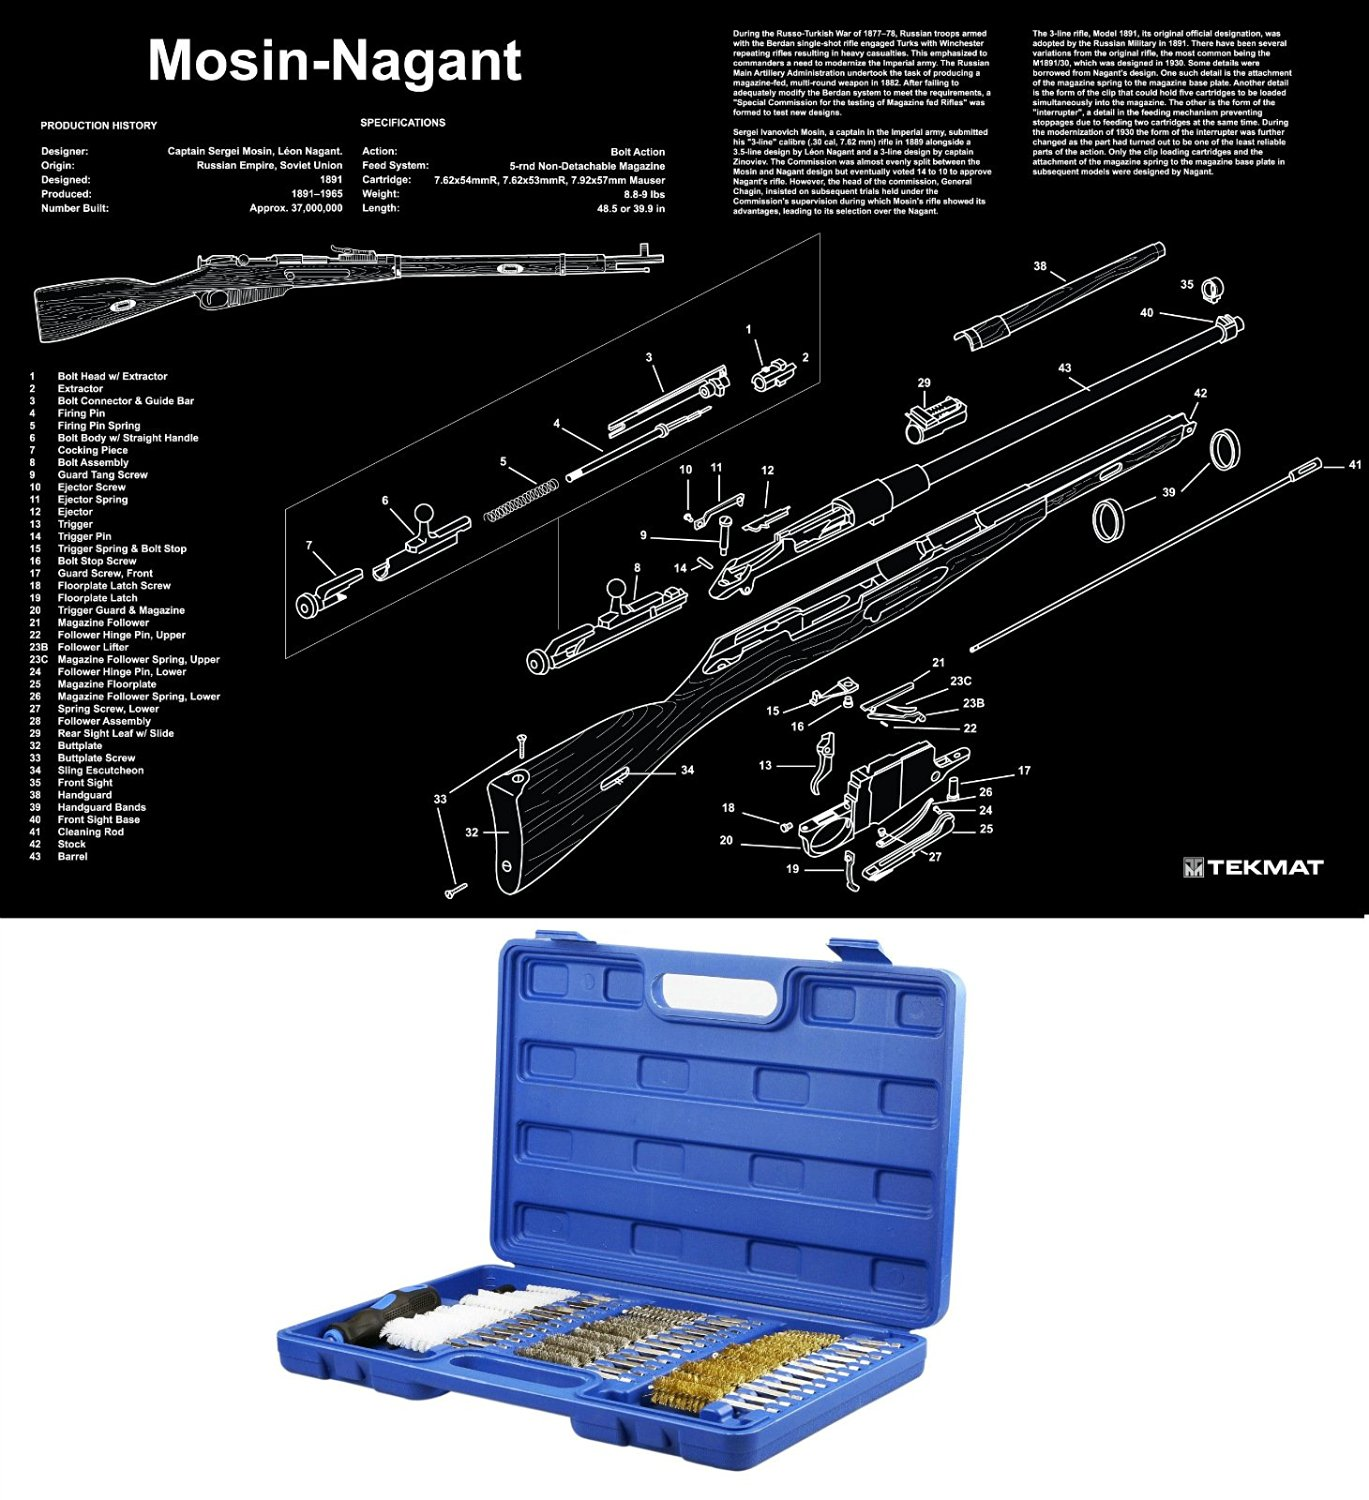 Cheap Tube Schematics Find Deals On Line At. Get Quotations Ultimate Arms Gear Mosin Nagant Poster Gun Schematics Wall Decoration 38pc Cleaning Kit Tube. Wiring. Zenith Tube Radio Schematics 39a At Scoala.co